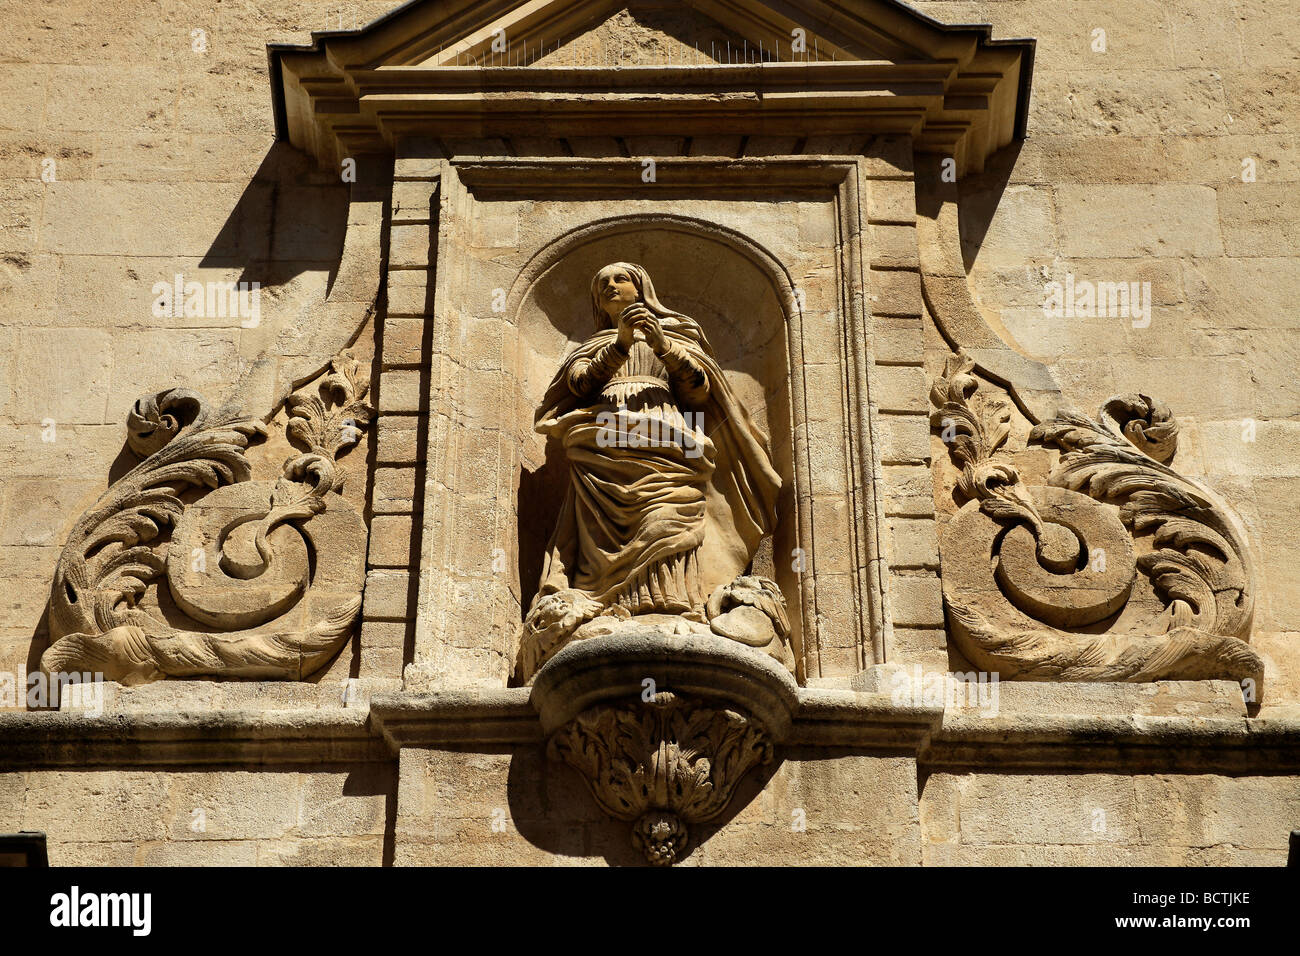 Portal of the Ancienne Cathedrale Ste-Anne Church, in Apt En Provence, France, Europe Stock Photo